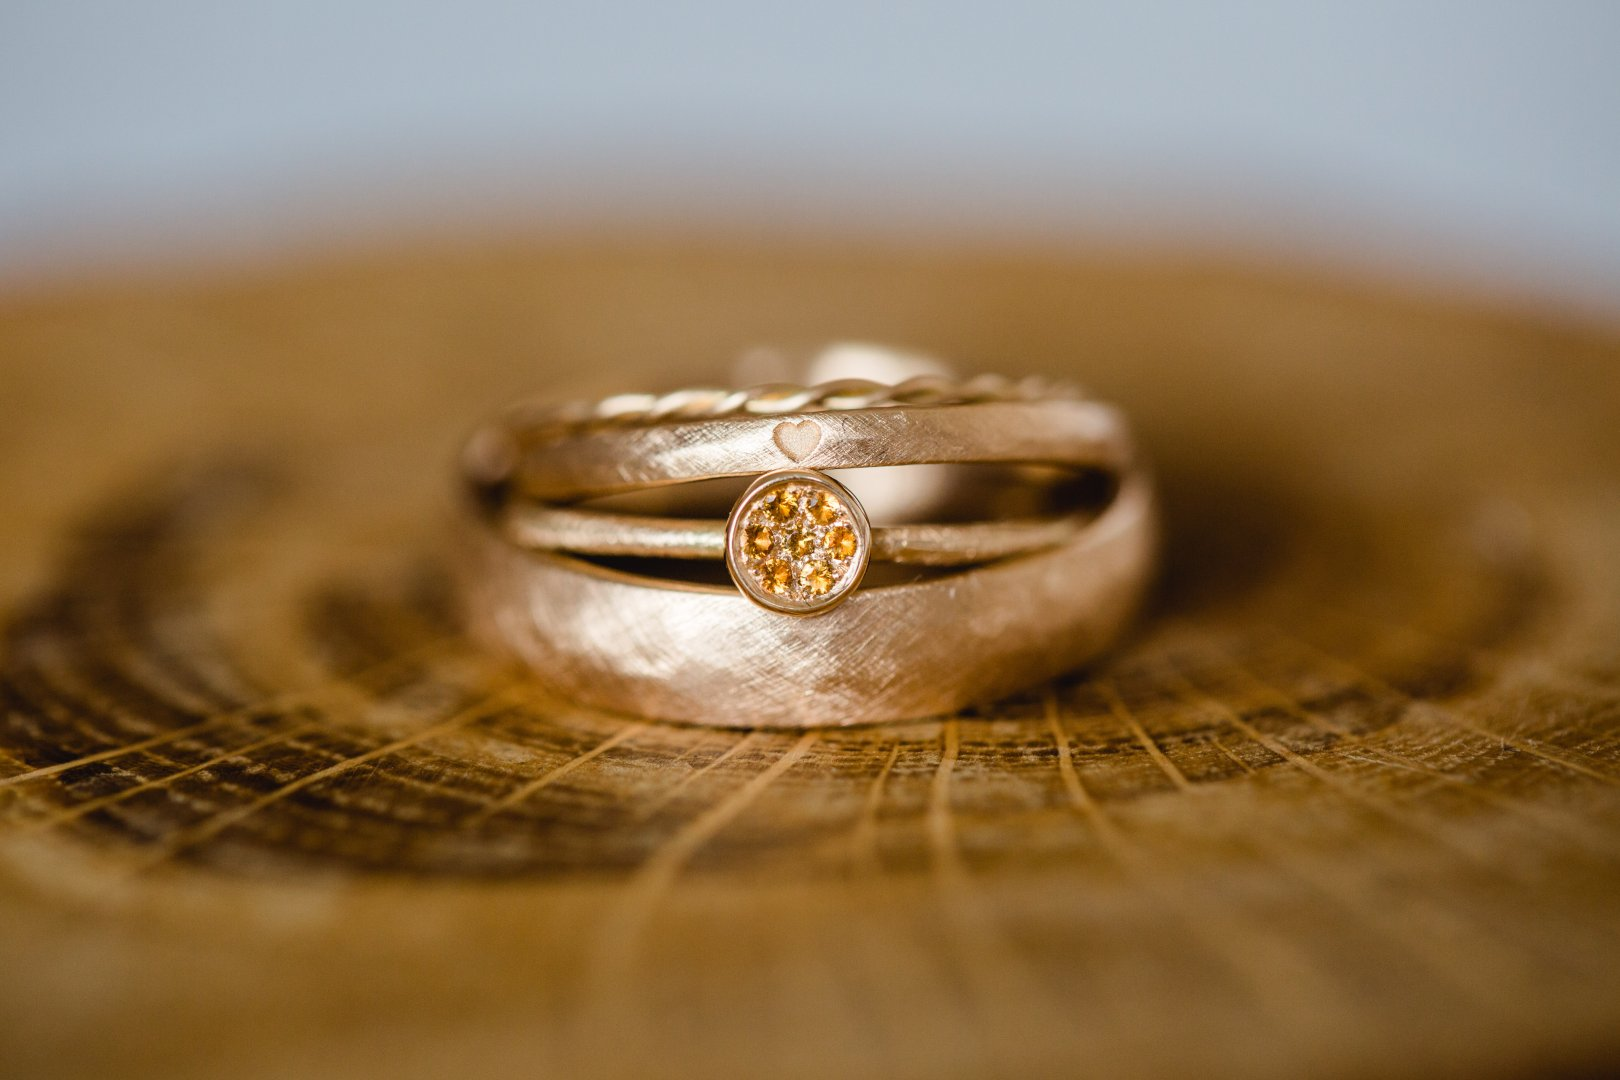 Ring Photograph Wedding ring Wedding ceremony supply Engagement ring Marriage Close-up Fashion accessory Jewellery Yellow Macro photography Metal Photography Body jewelry Gold Engagement Ceremony Still life photography Wood Wedding Silver Circle